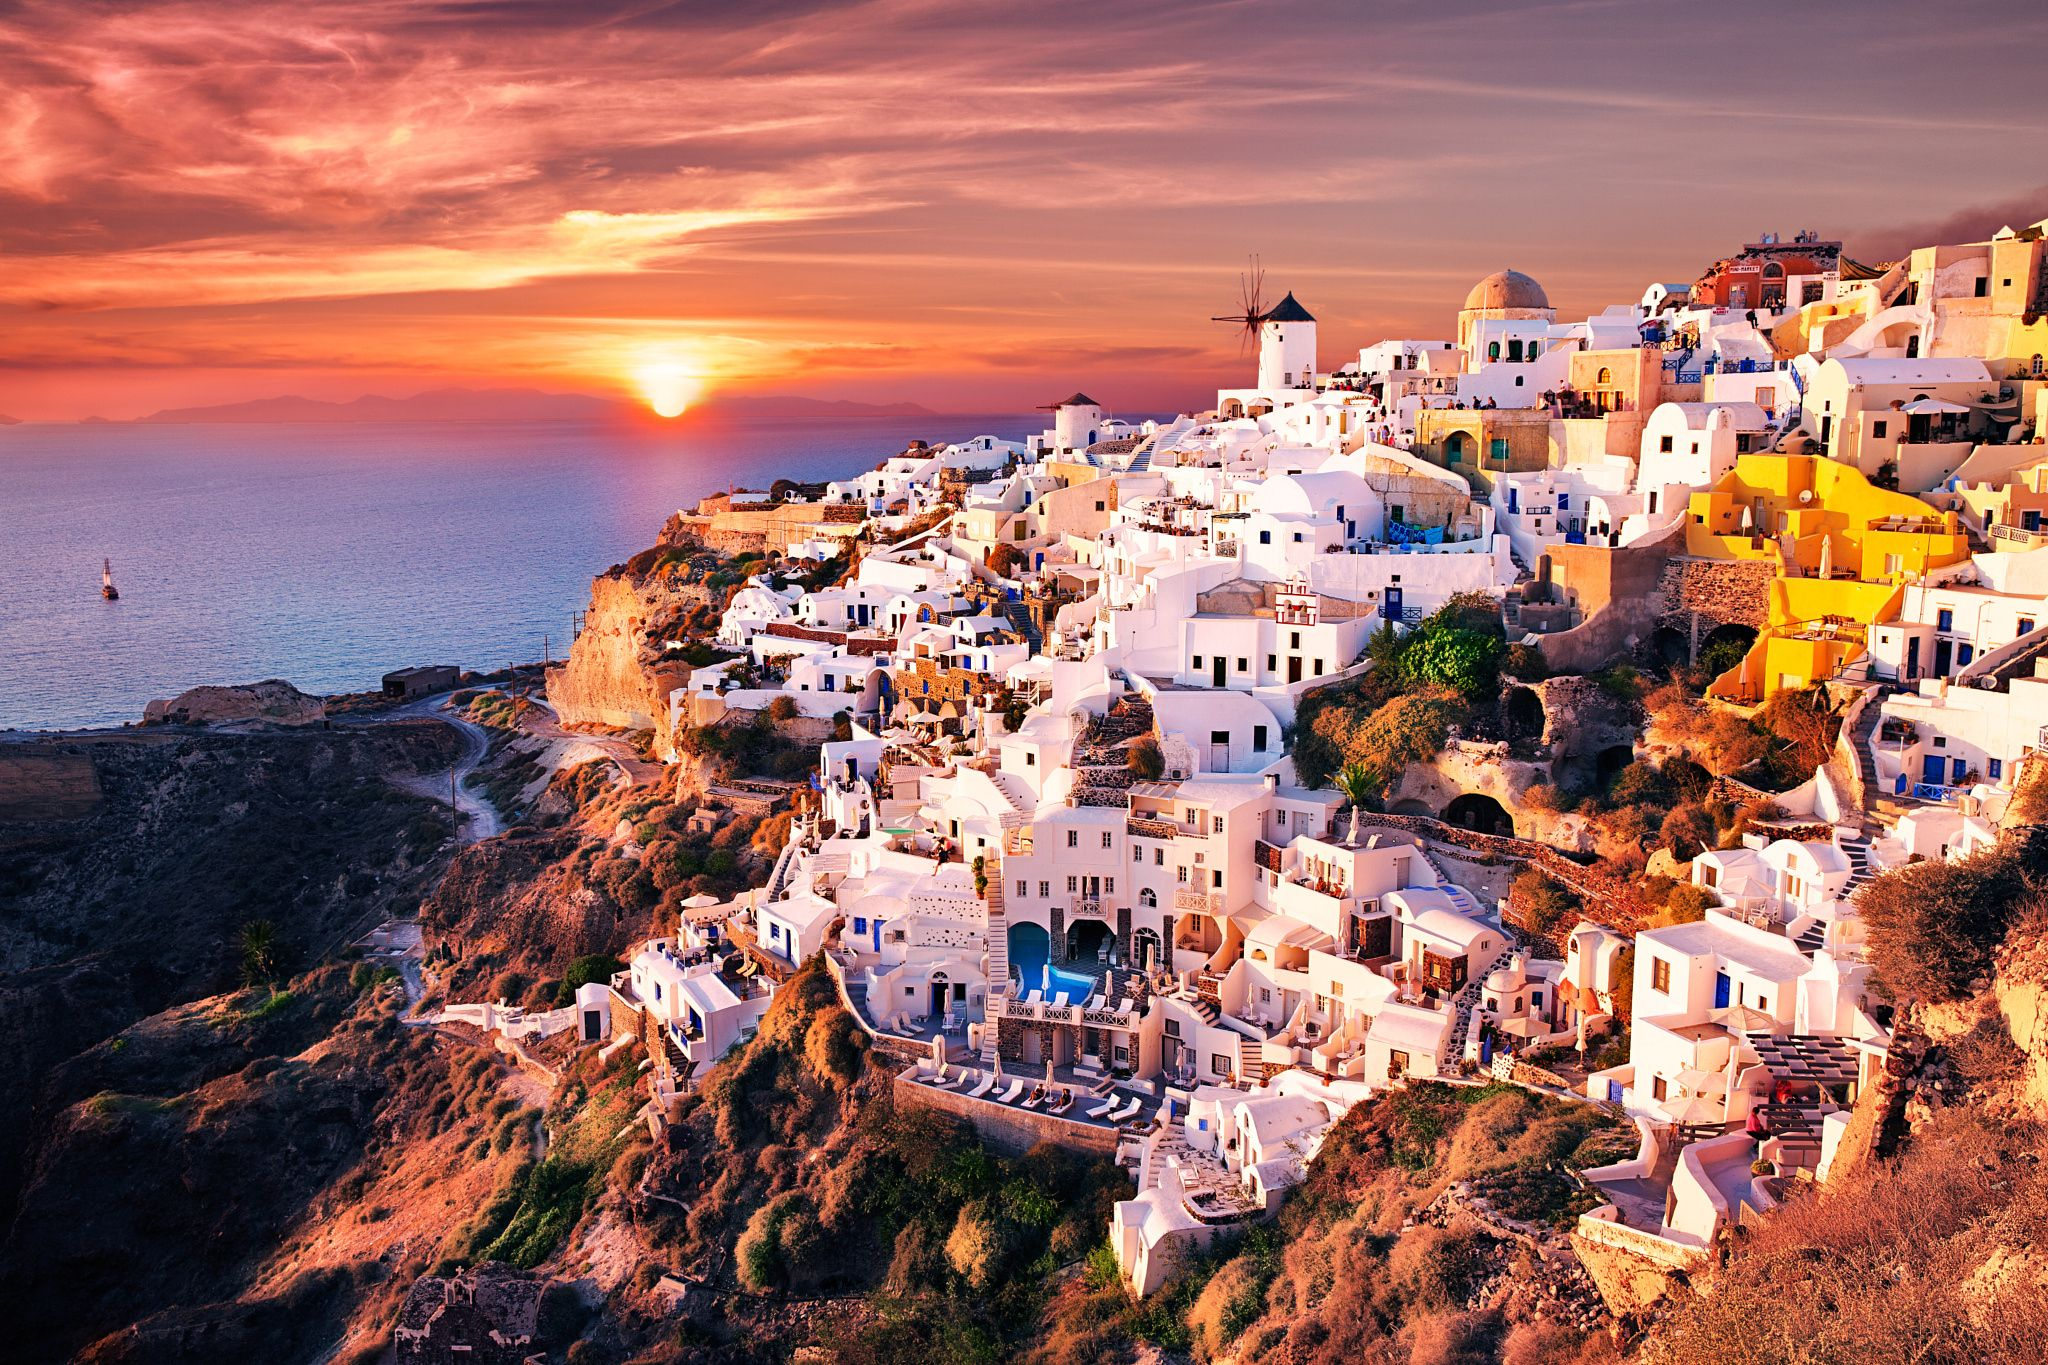 70 Santorini Wallpapers   Download at WallpaperBro 2048x1365